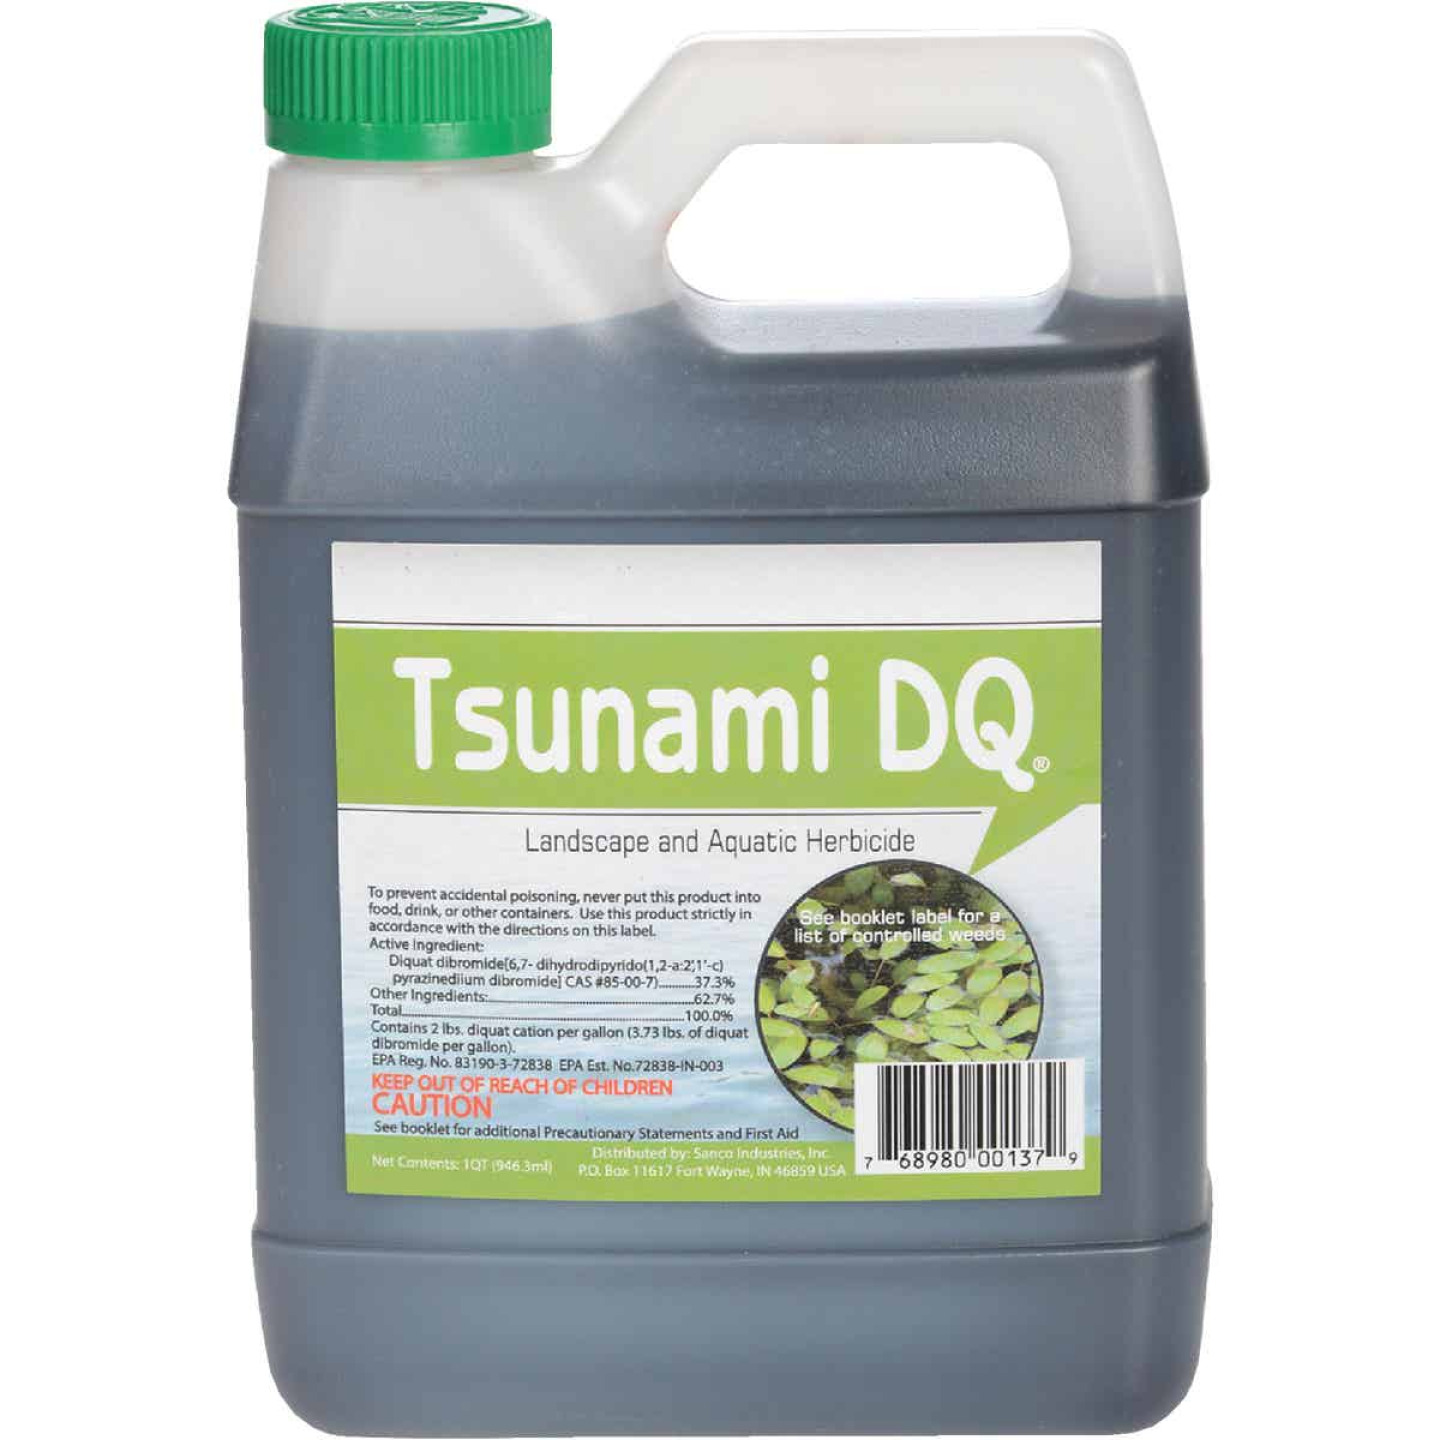 Tsunami DQ 1 Qt. Liquid 2 to 8 Qt./Acre Coverage Area Pond Weed Control Image 1